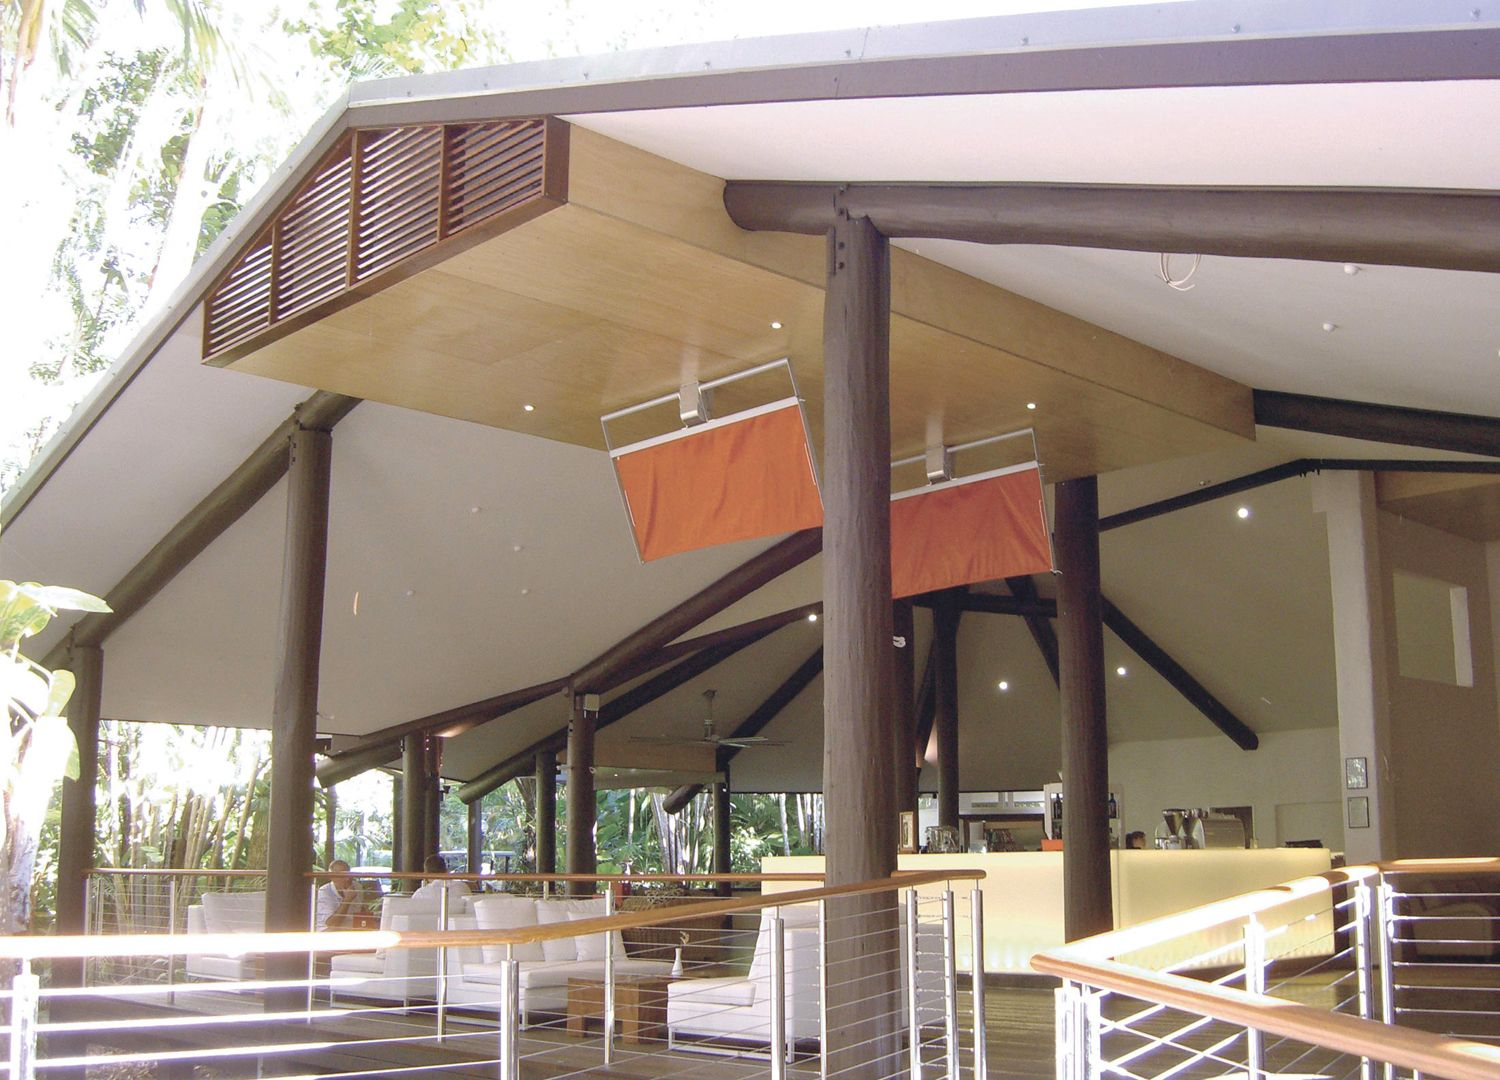 The Solitaire Punkah Swinging Ceiling Fans At Kewarra